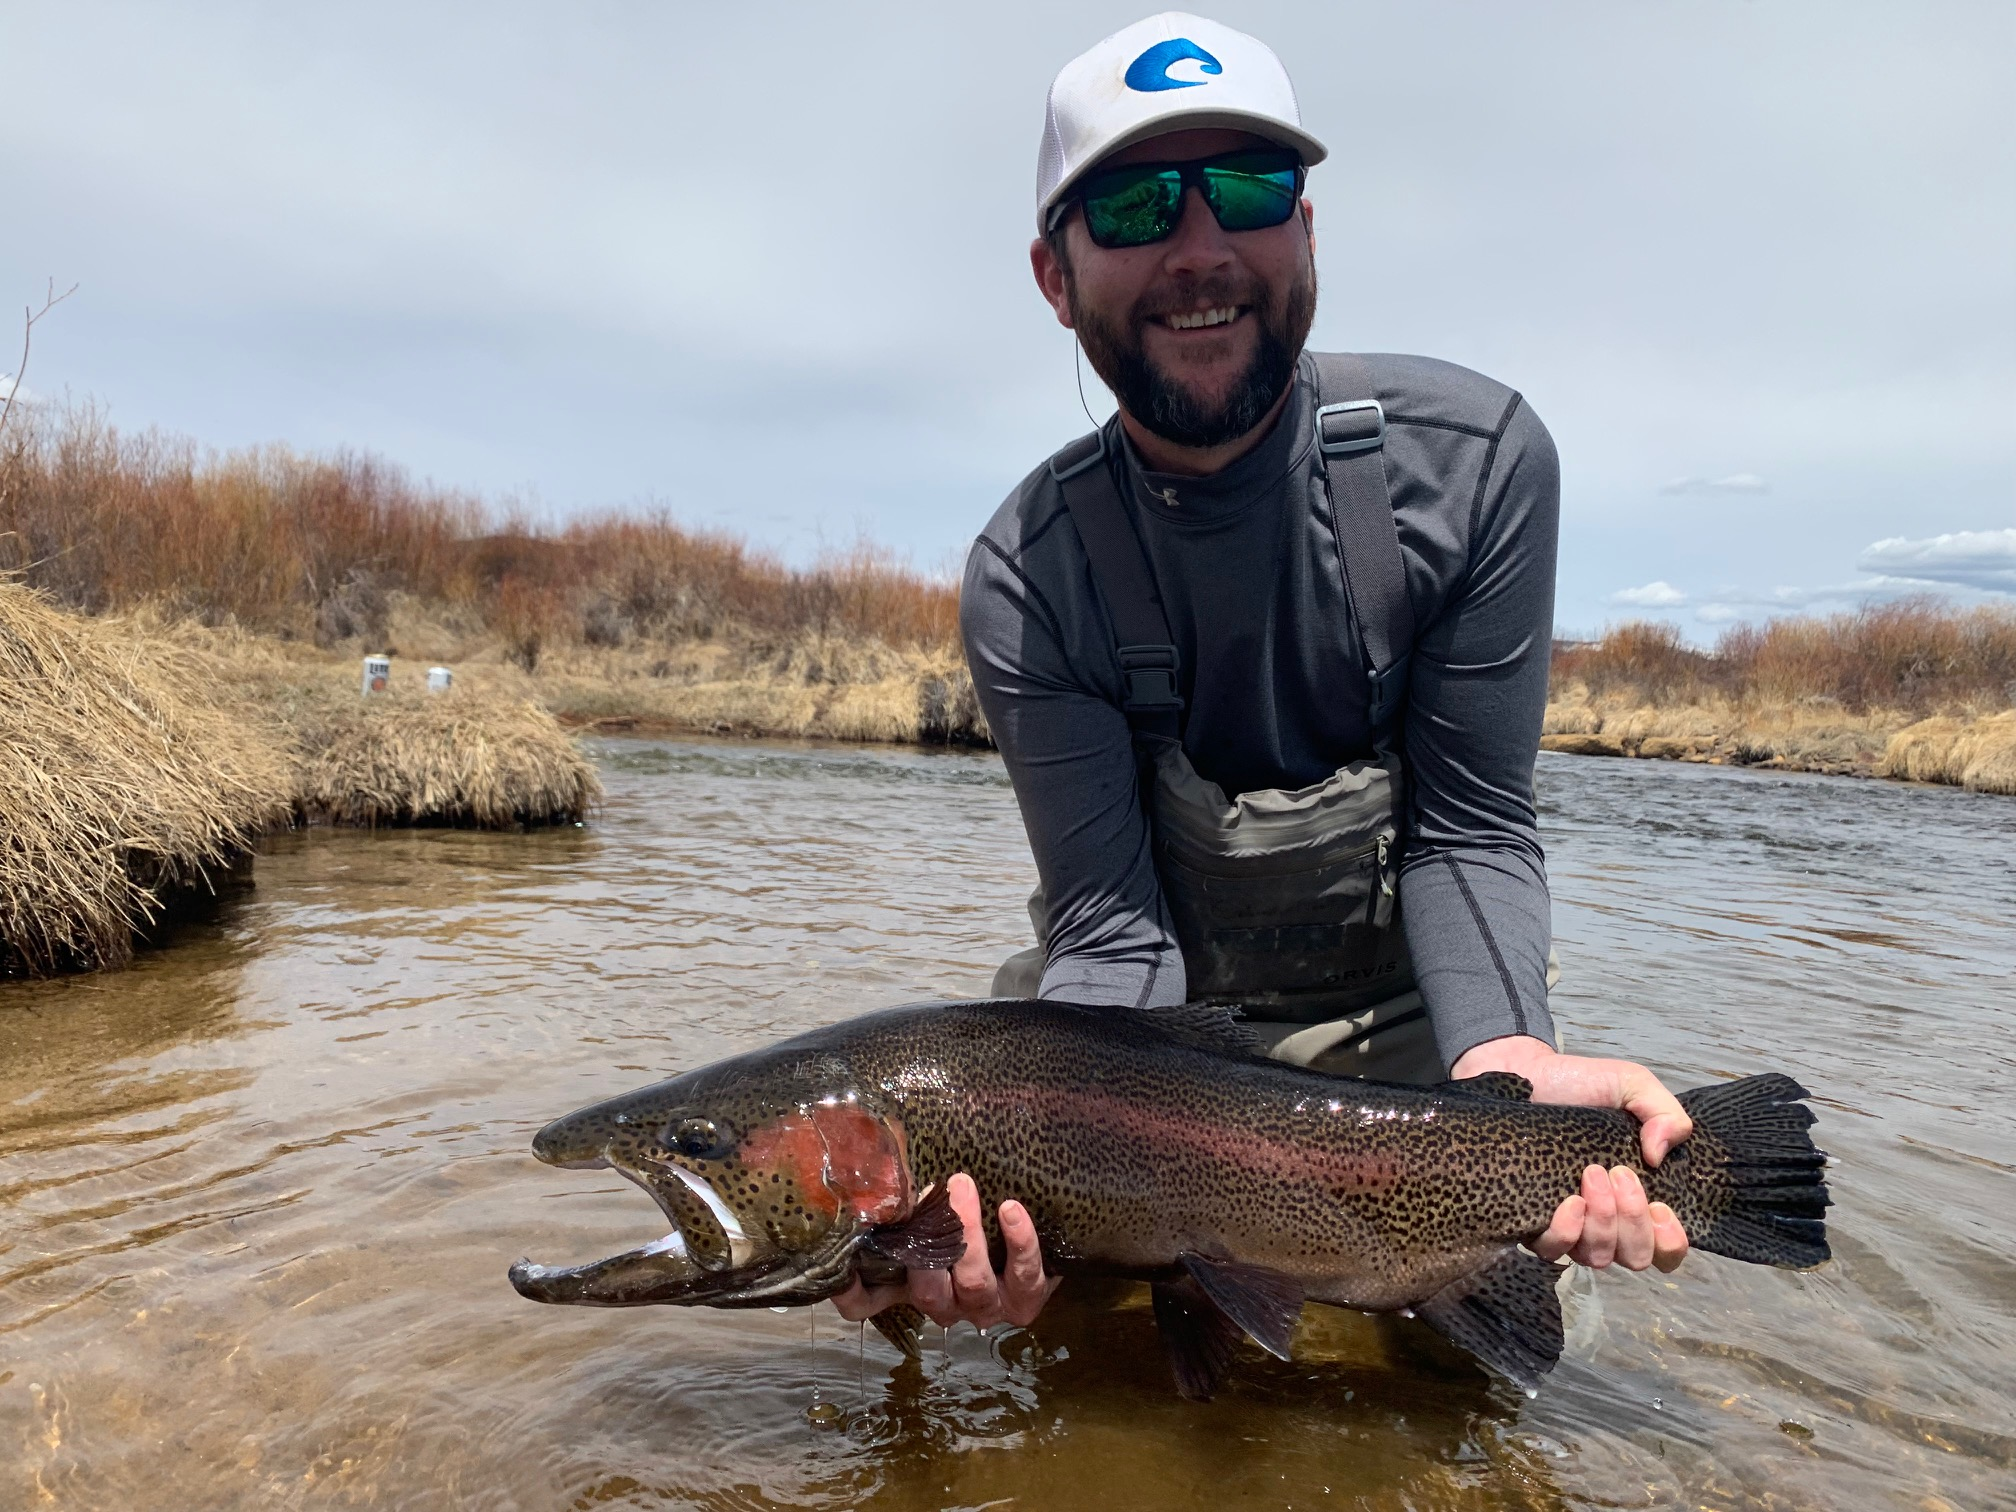 Fly fishing for giant trout at Rolling J Ranch.